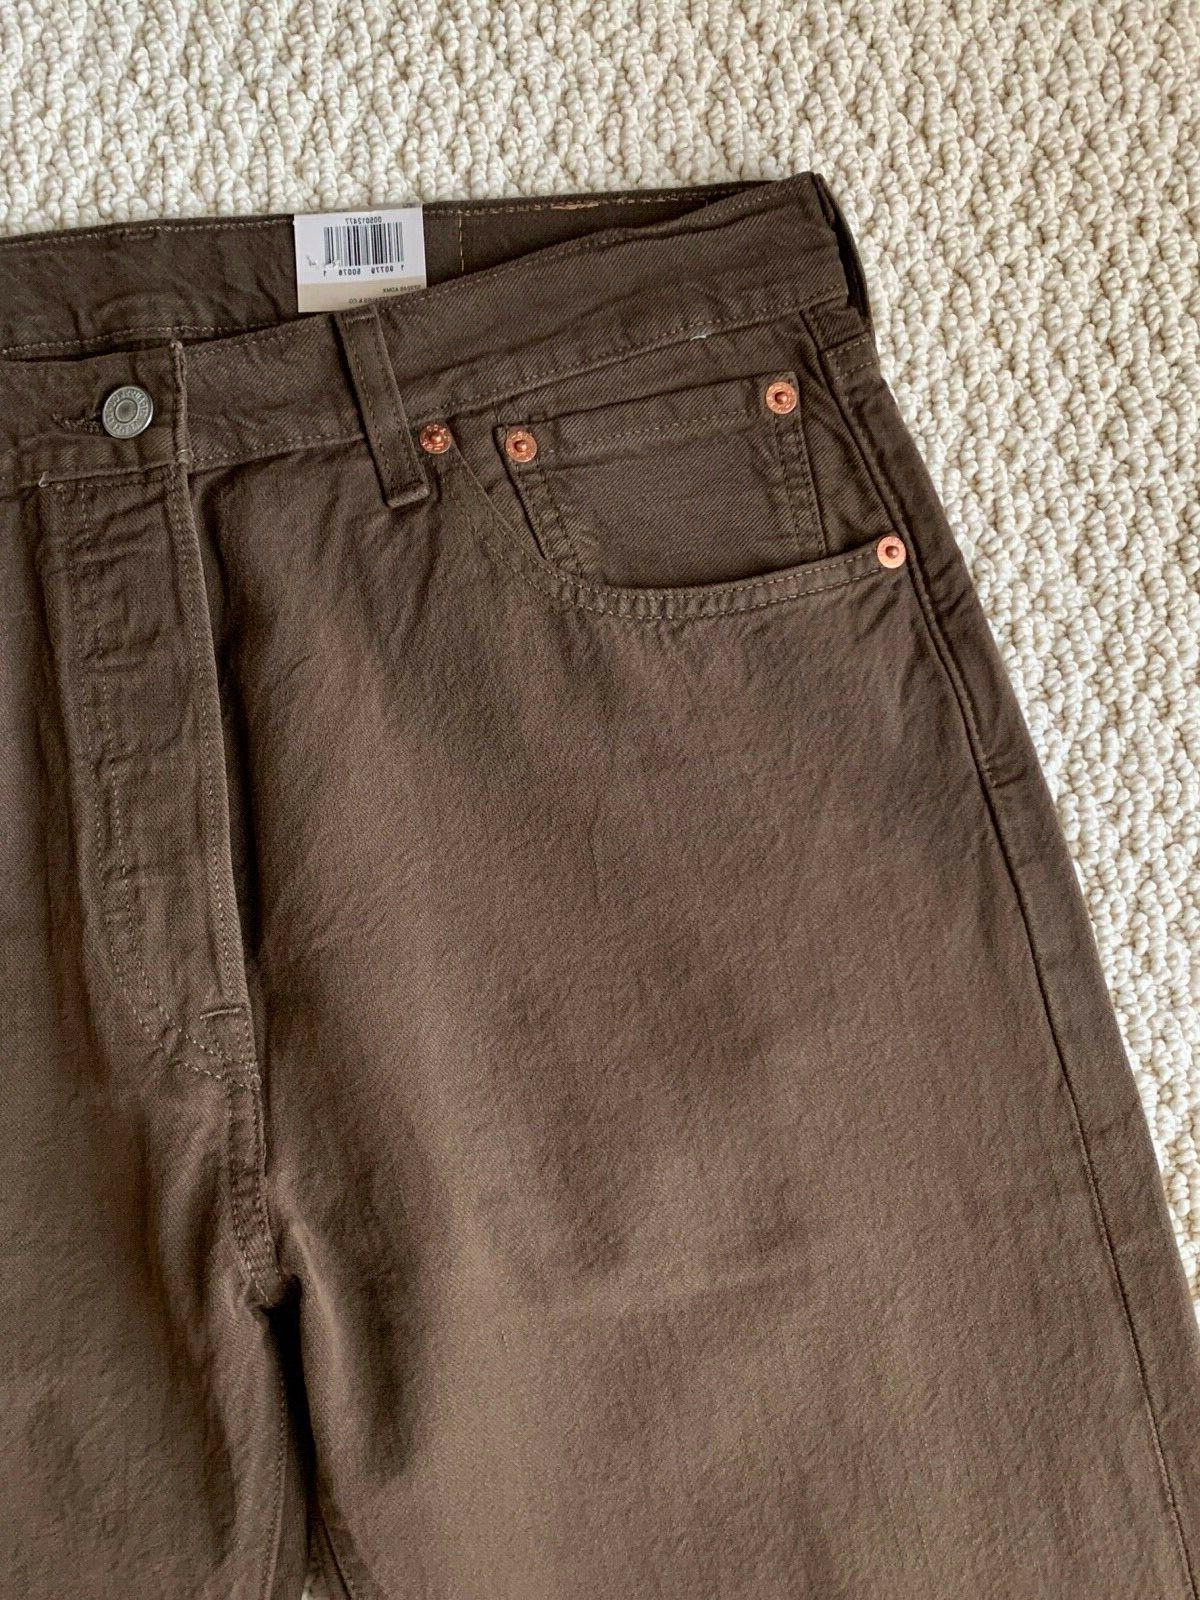 NWT Original Brown Straight SIZES